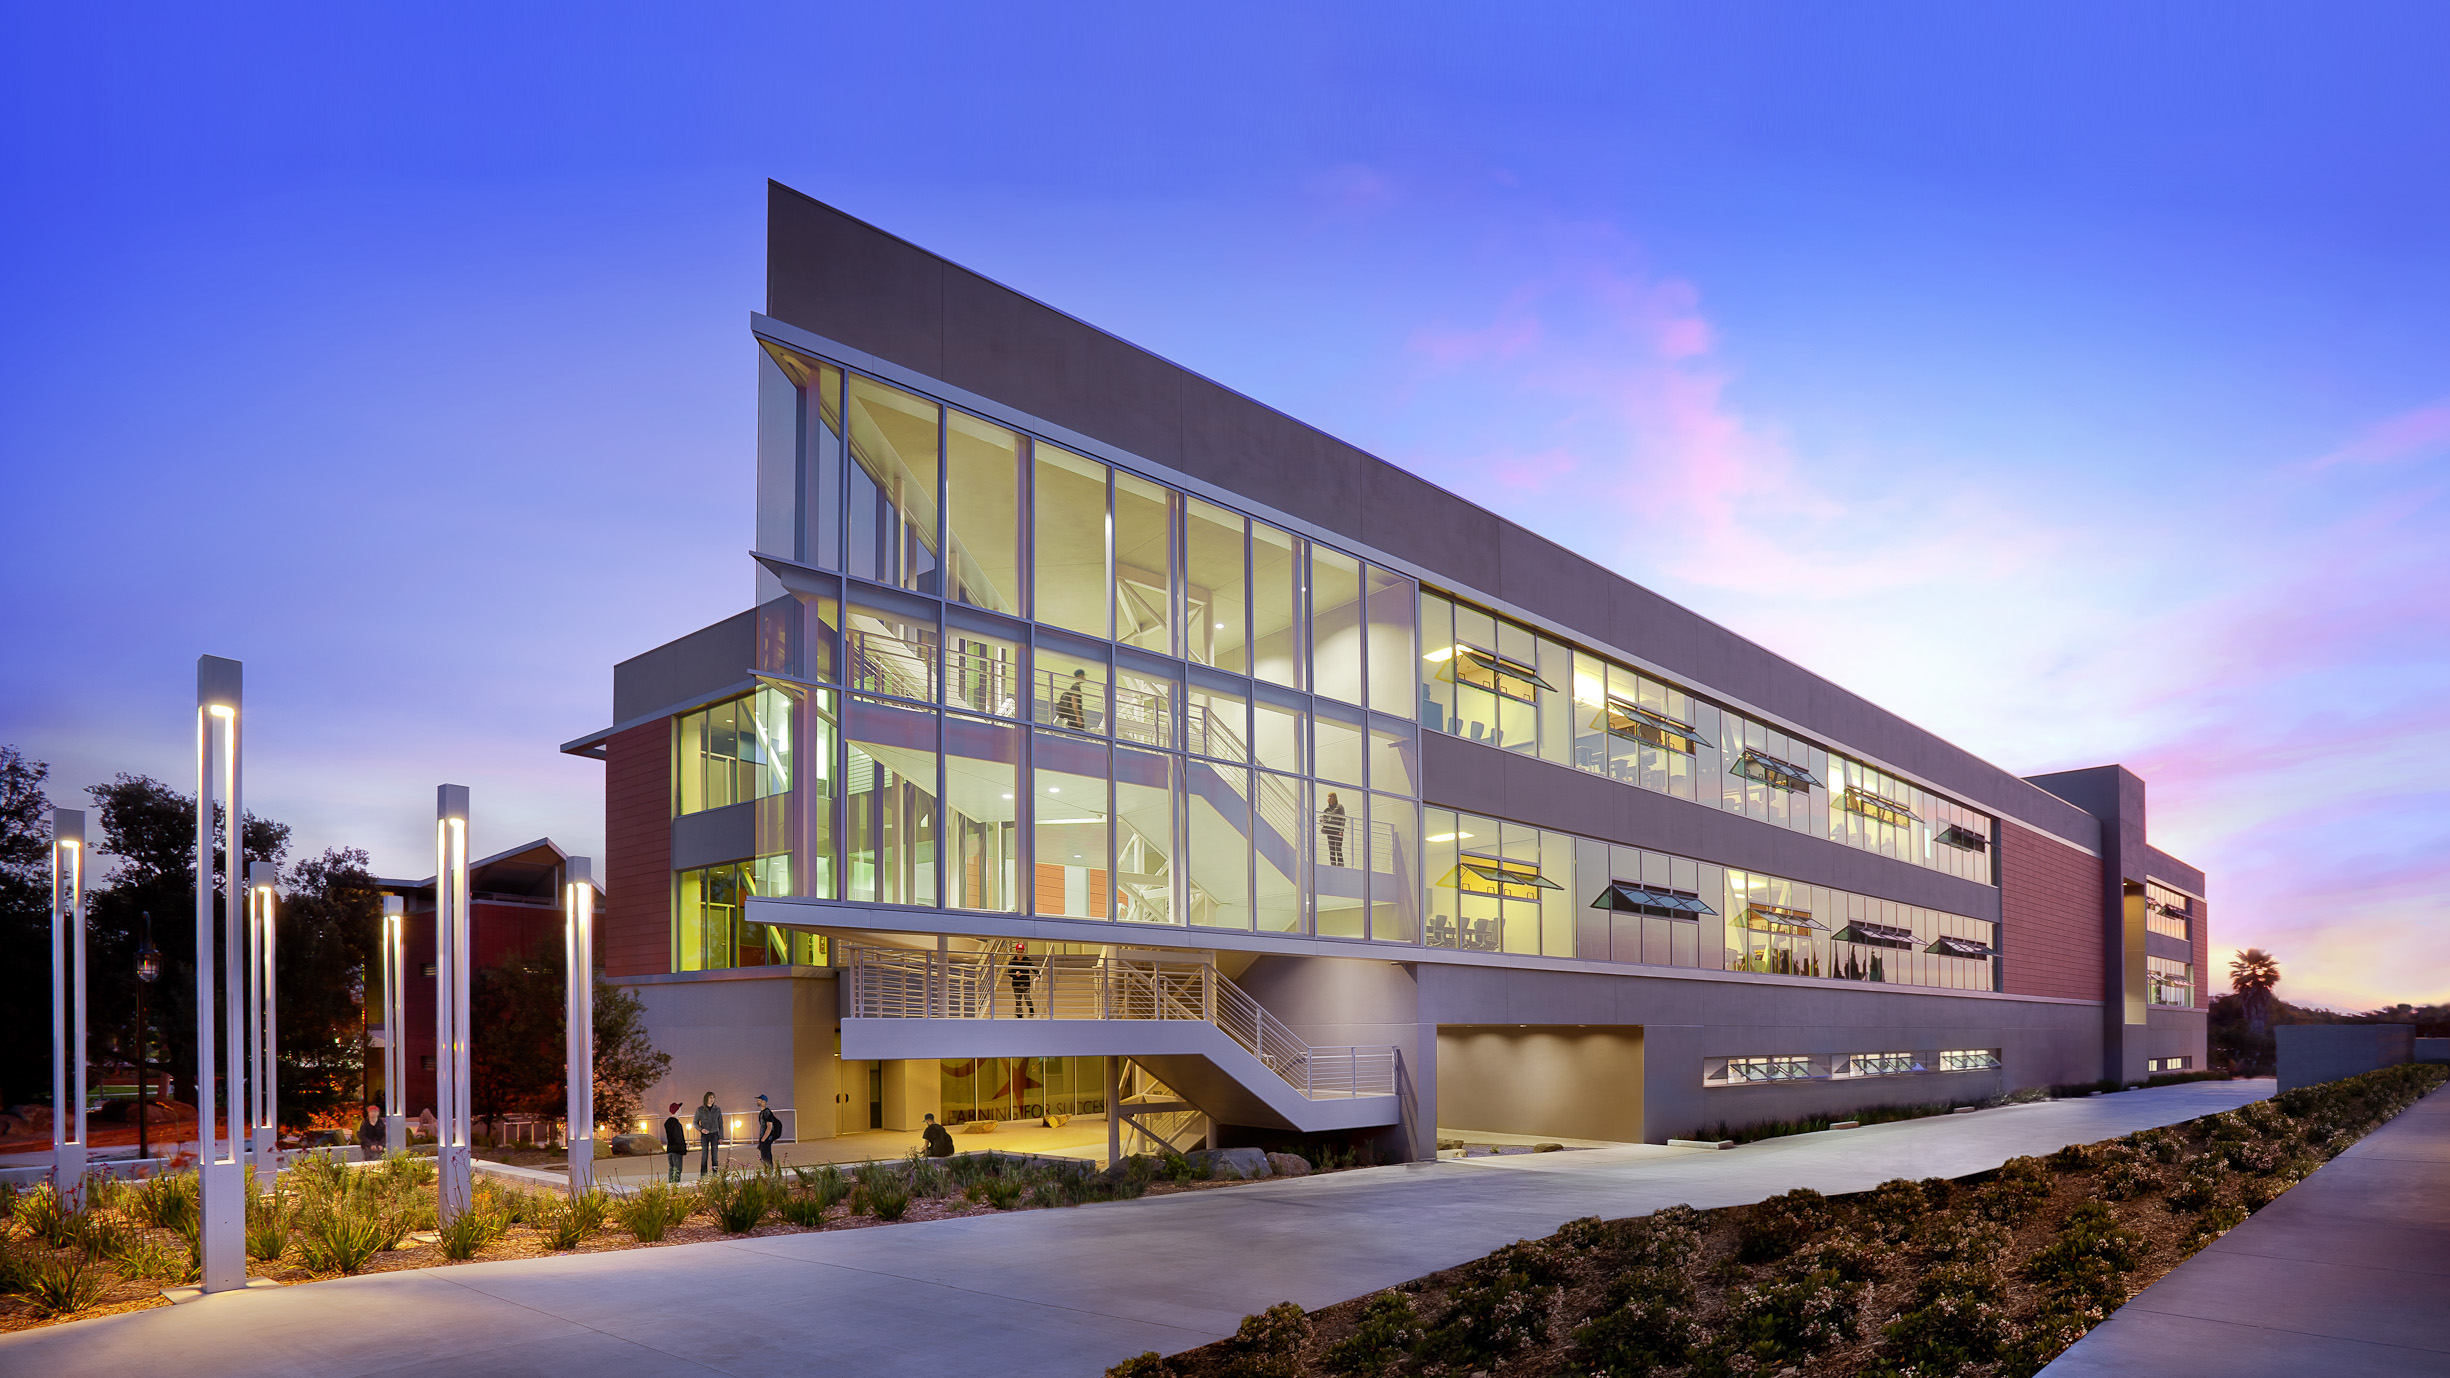 15 Design University Building Images